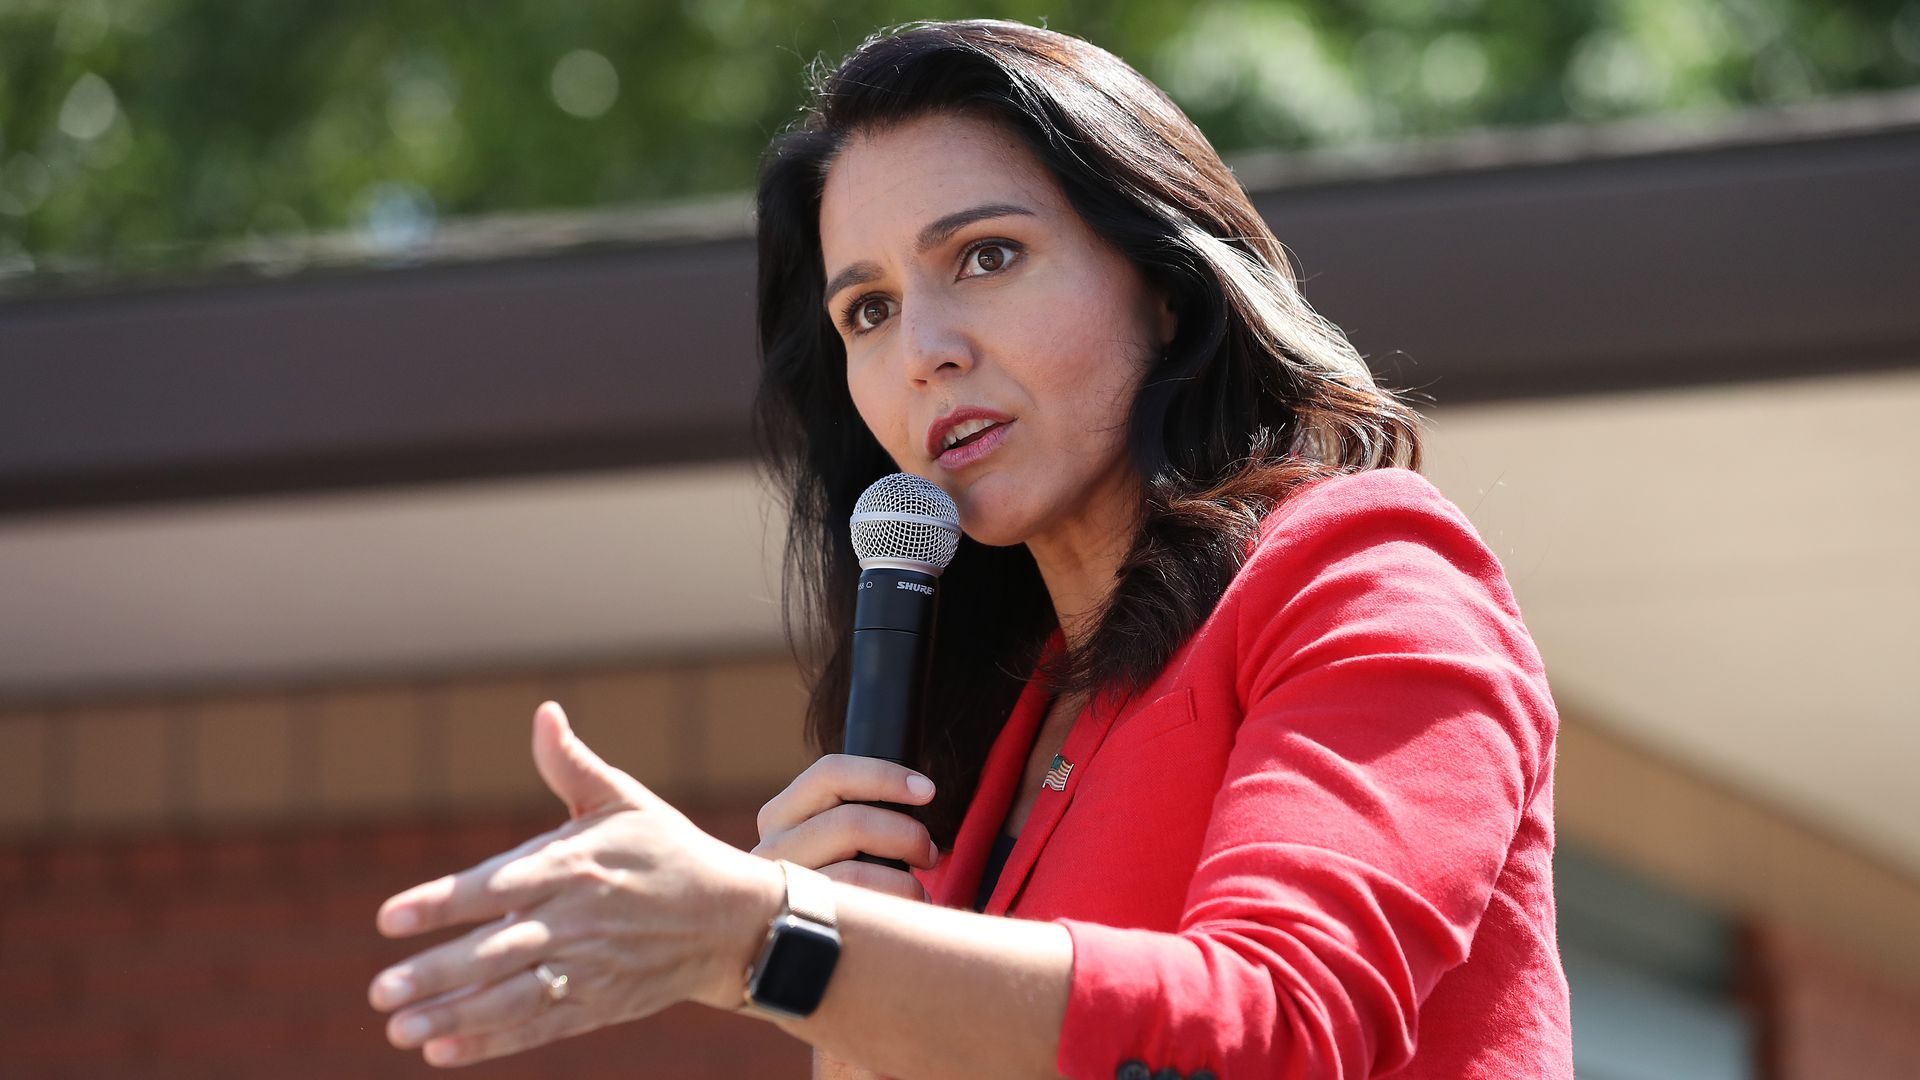 Democratic presidential candidate Rep. Tulsi Gabbard (D-HI) delivers a campaign speech at the Des Moines Register Political Soapbox during the Iowa State Fair